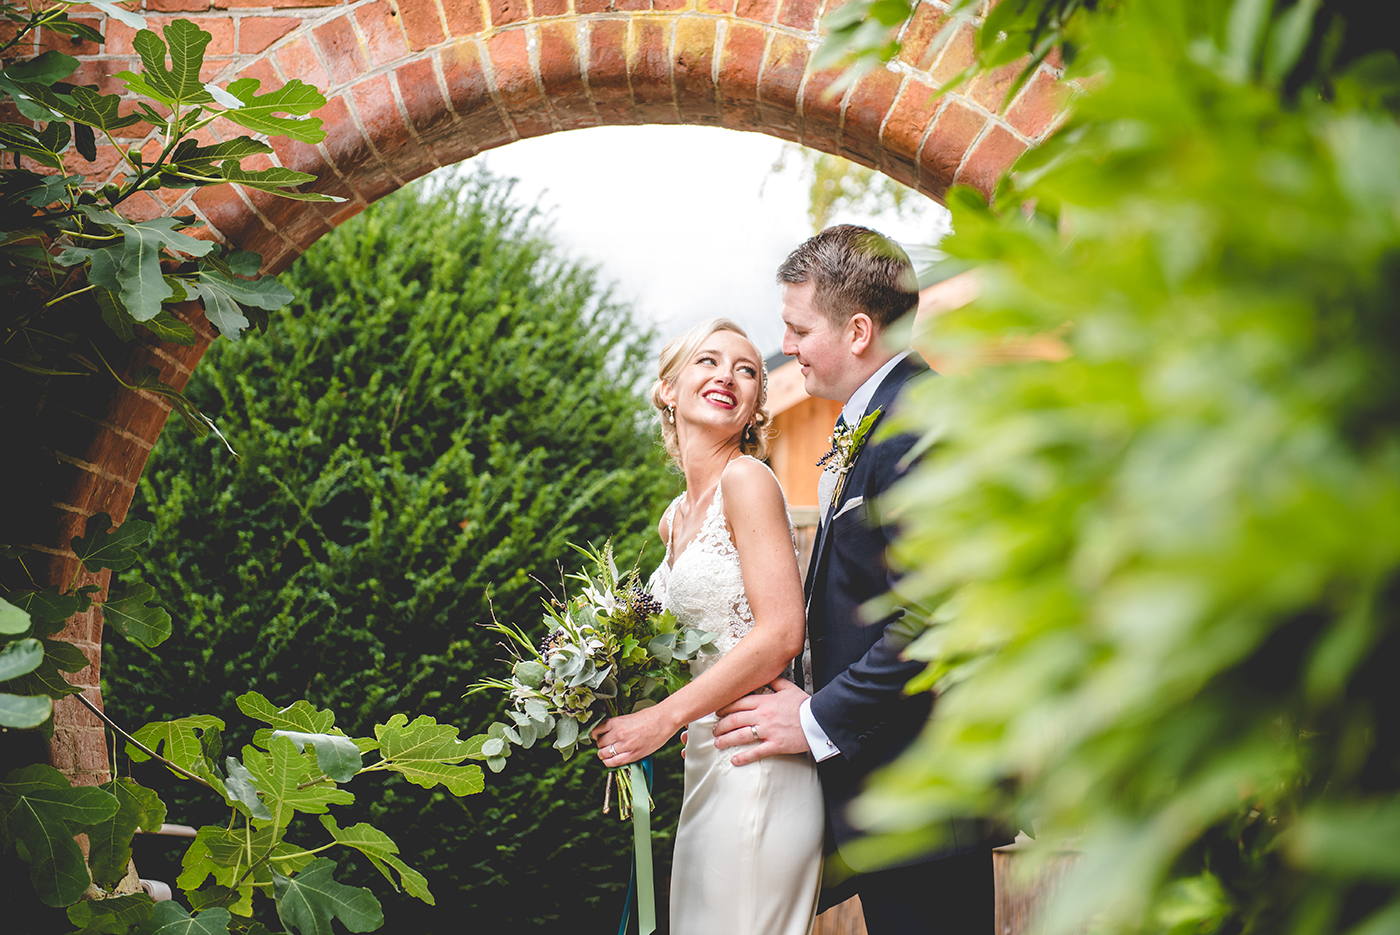 Norfolk mead wedding photography | Liz Bishop Photography